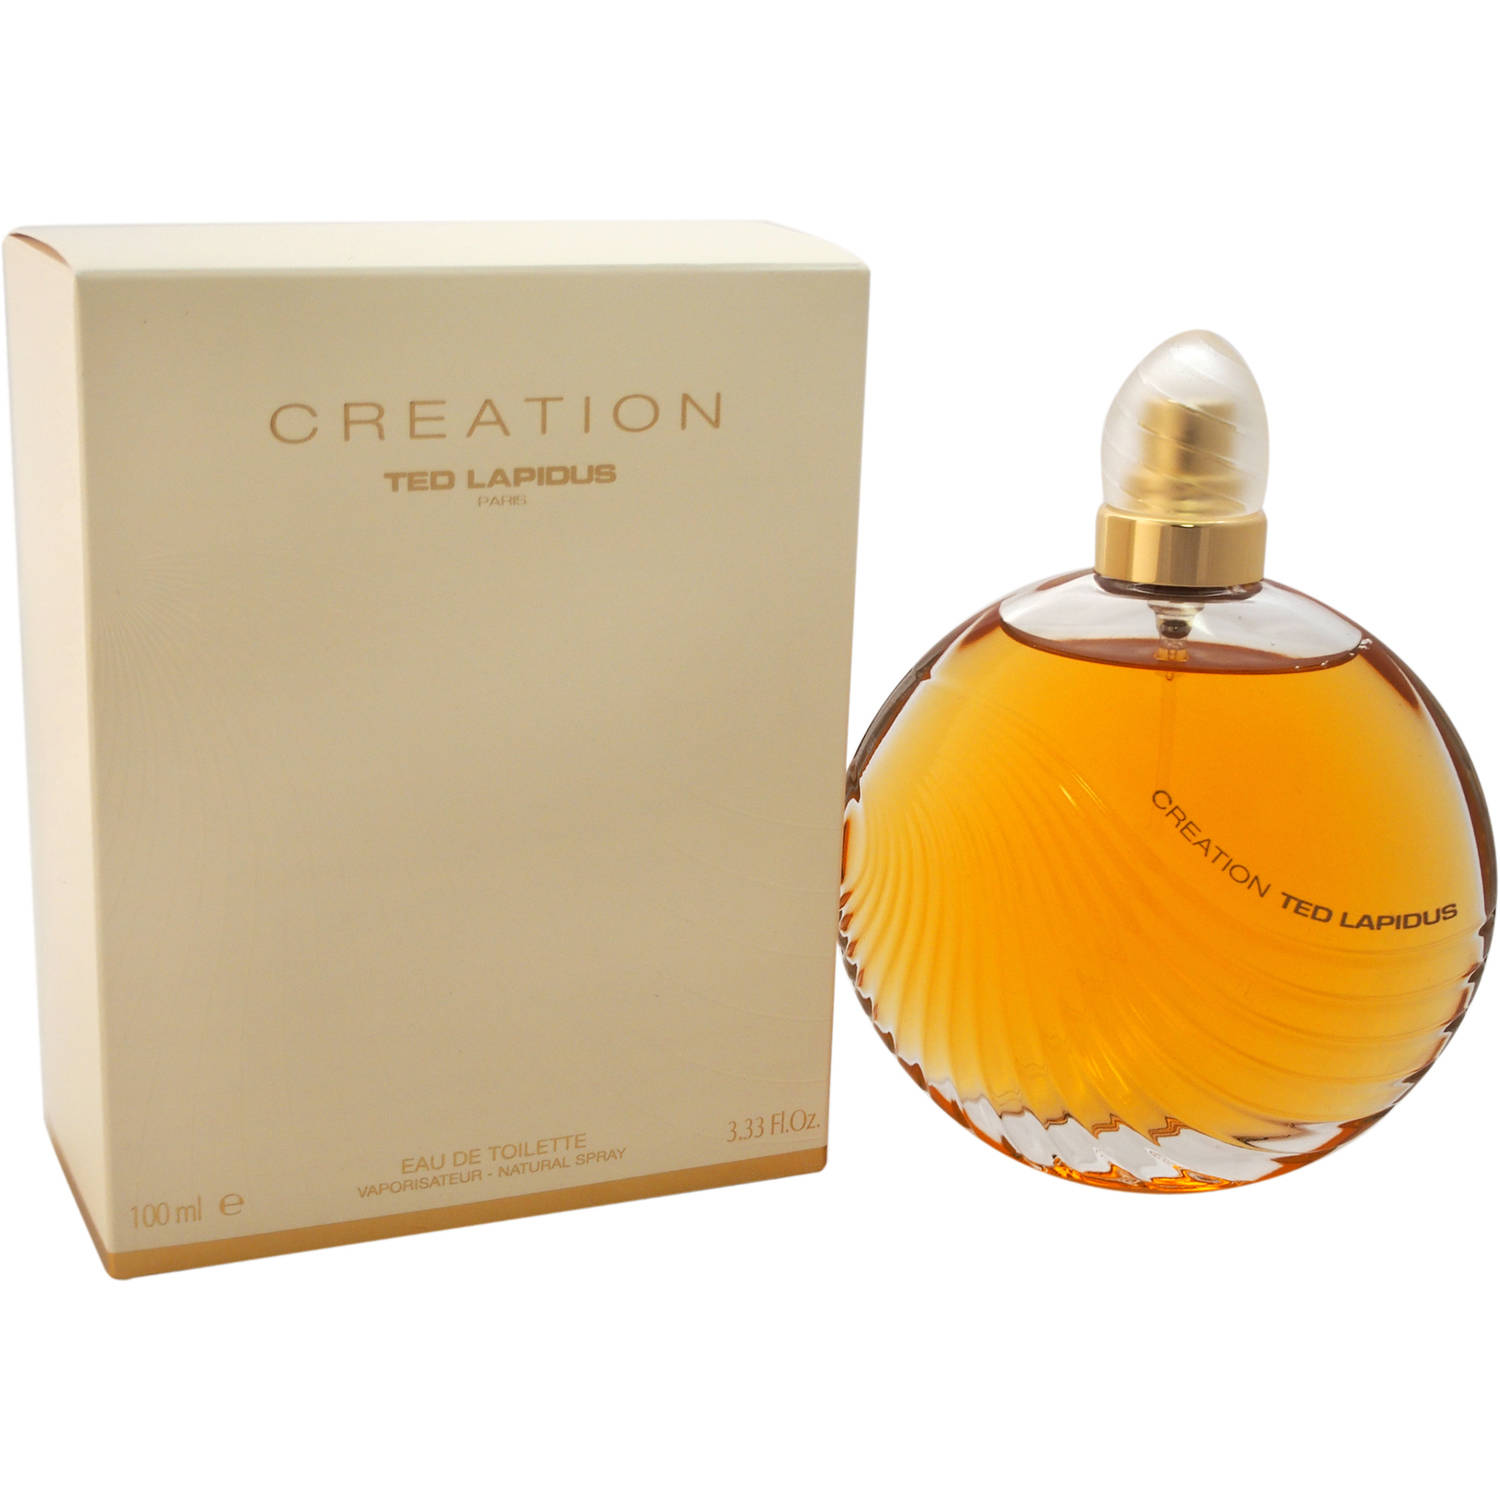 Ted Lapidus Creation for Women Eau de Toilette Spray, 3.3 oz